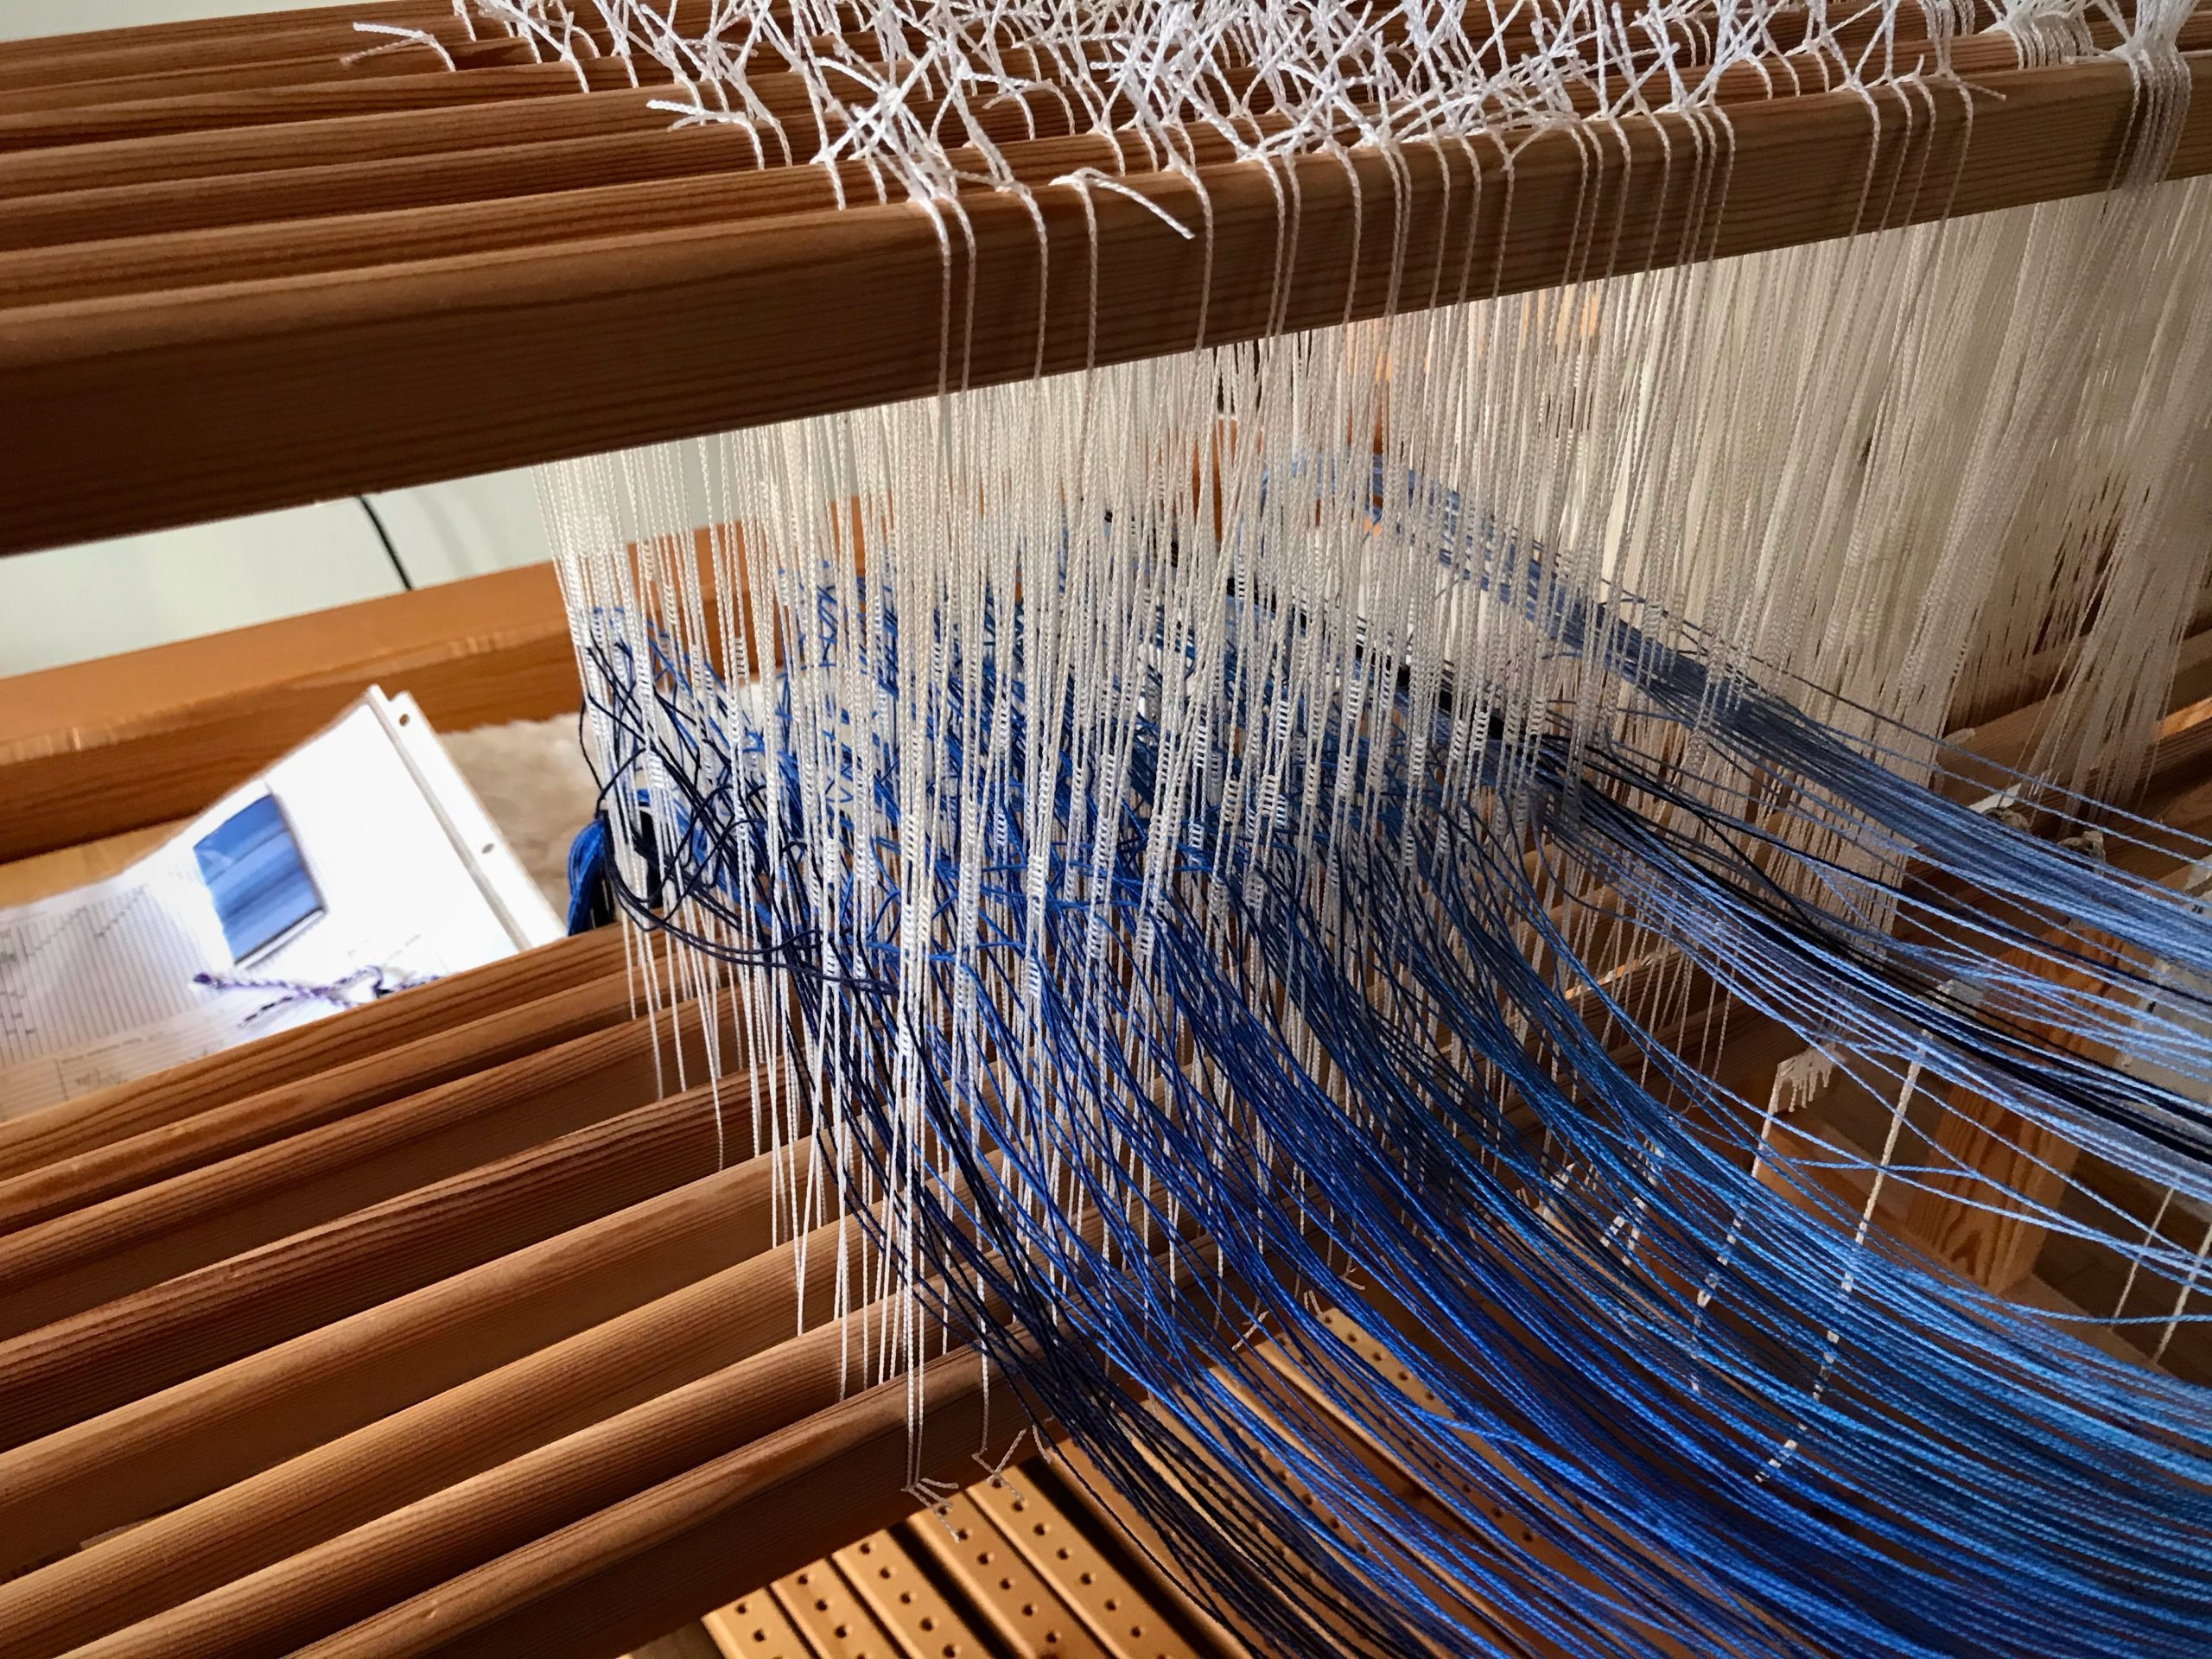 Threading heddles for 8-shaft twill.